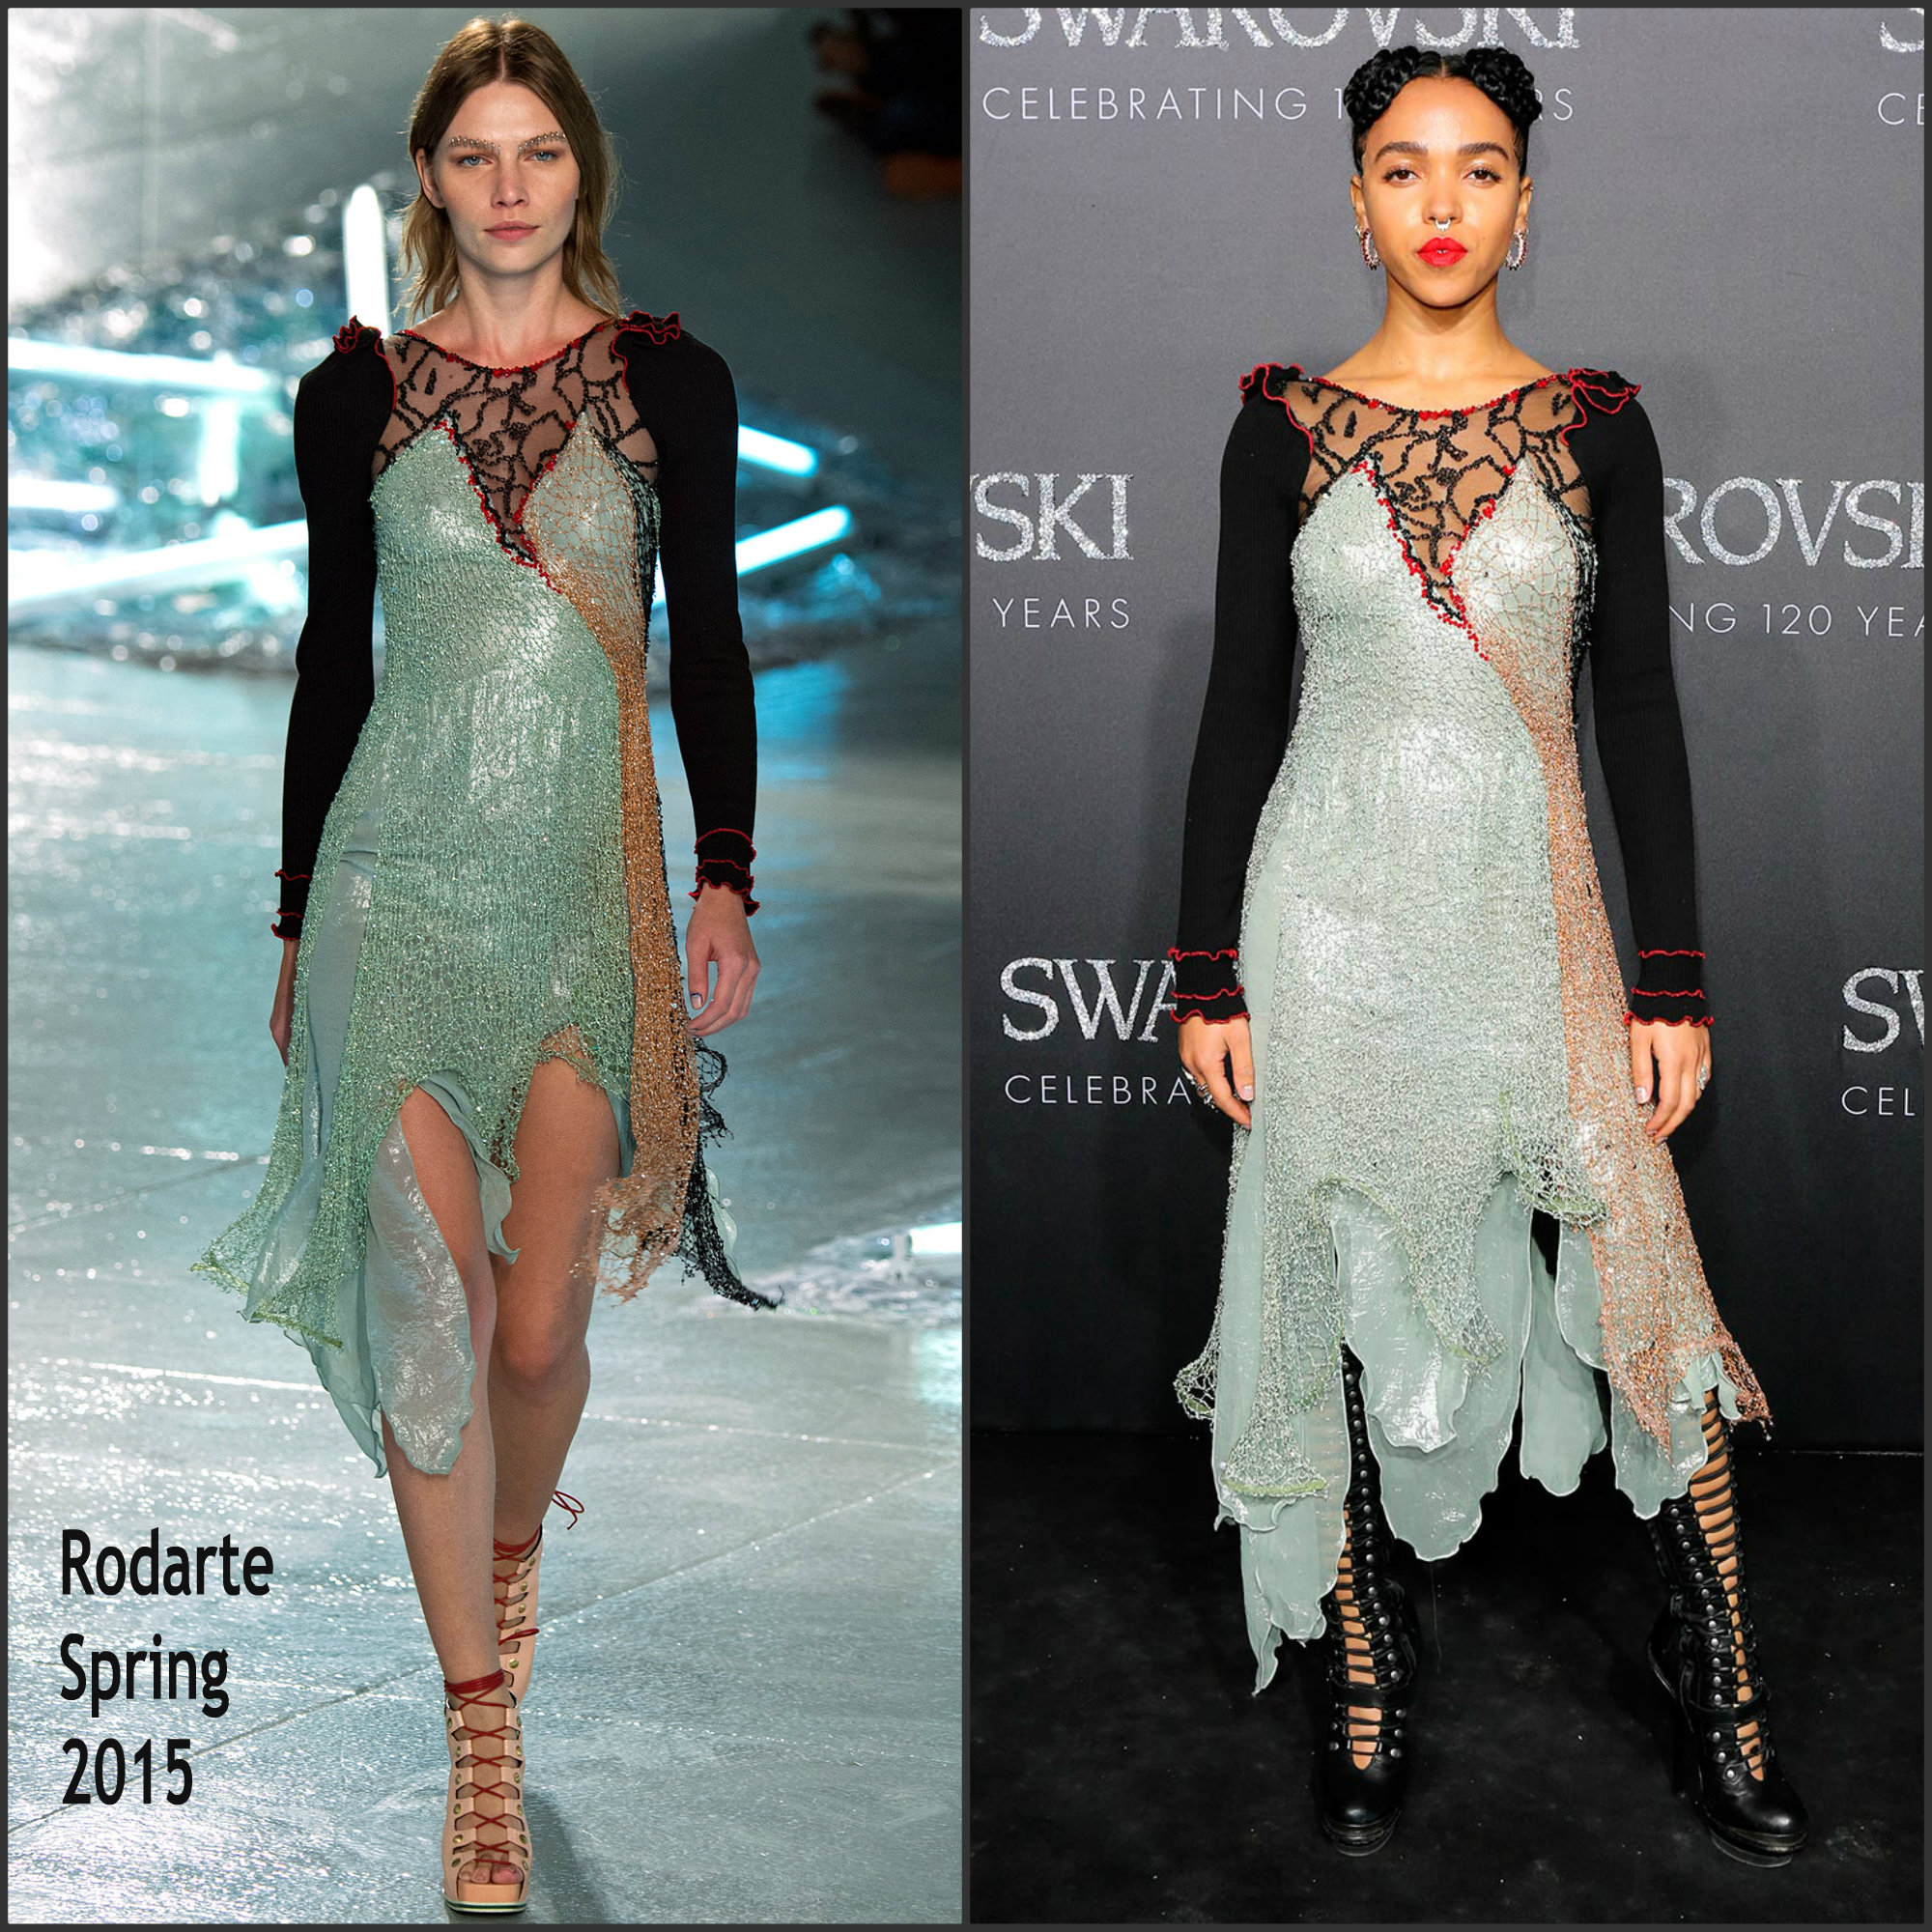 FKA-Twigs-in-Rodarte-at-swarovskis-120th-anniversary-gala